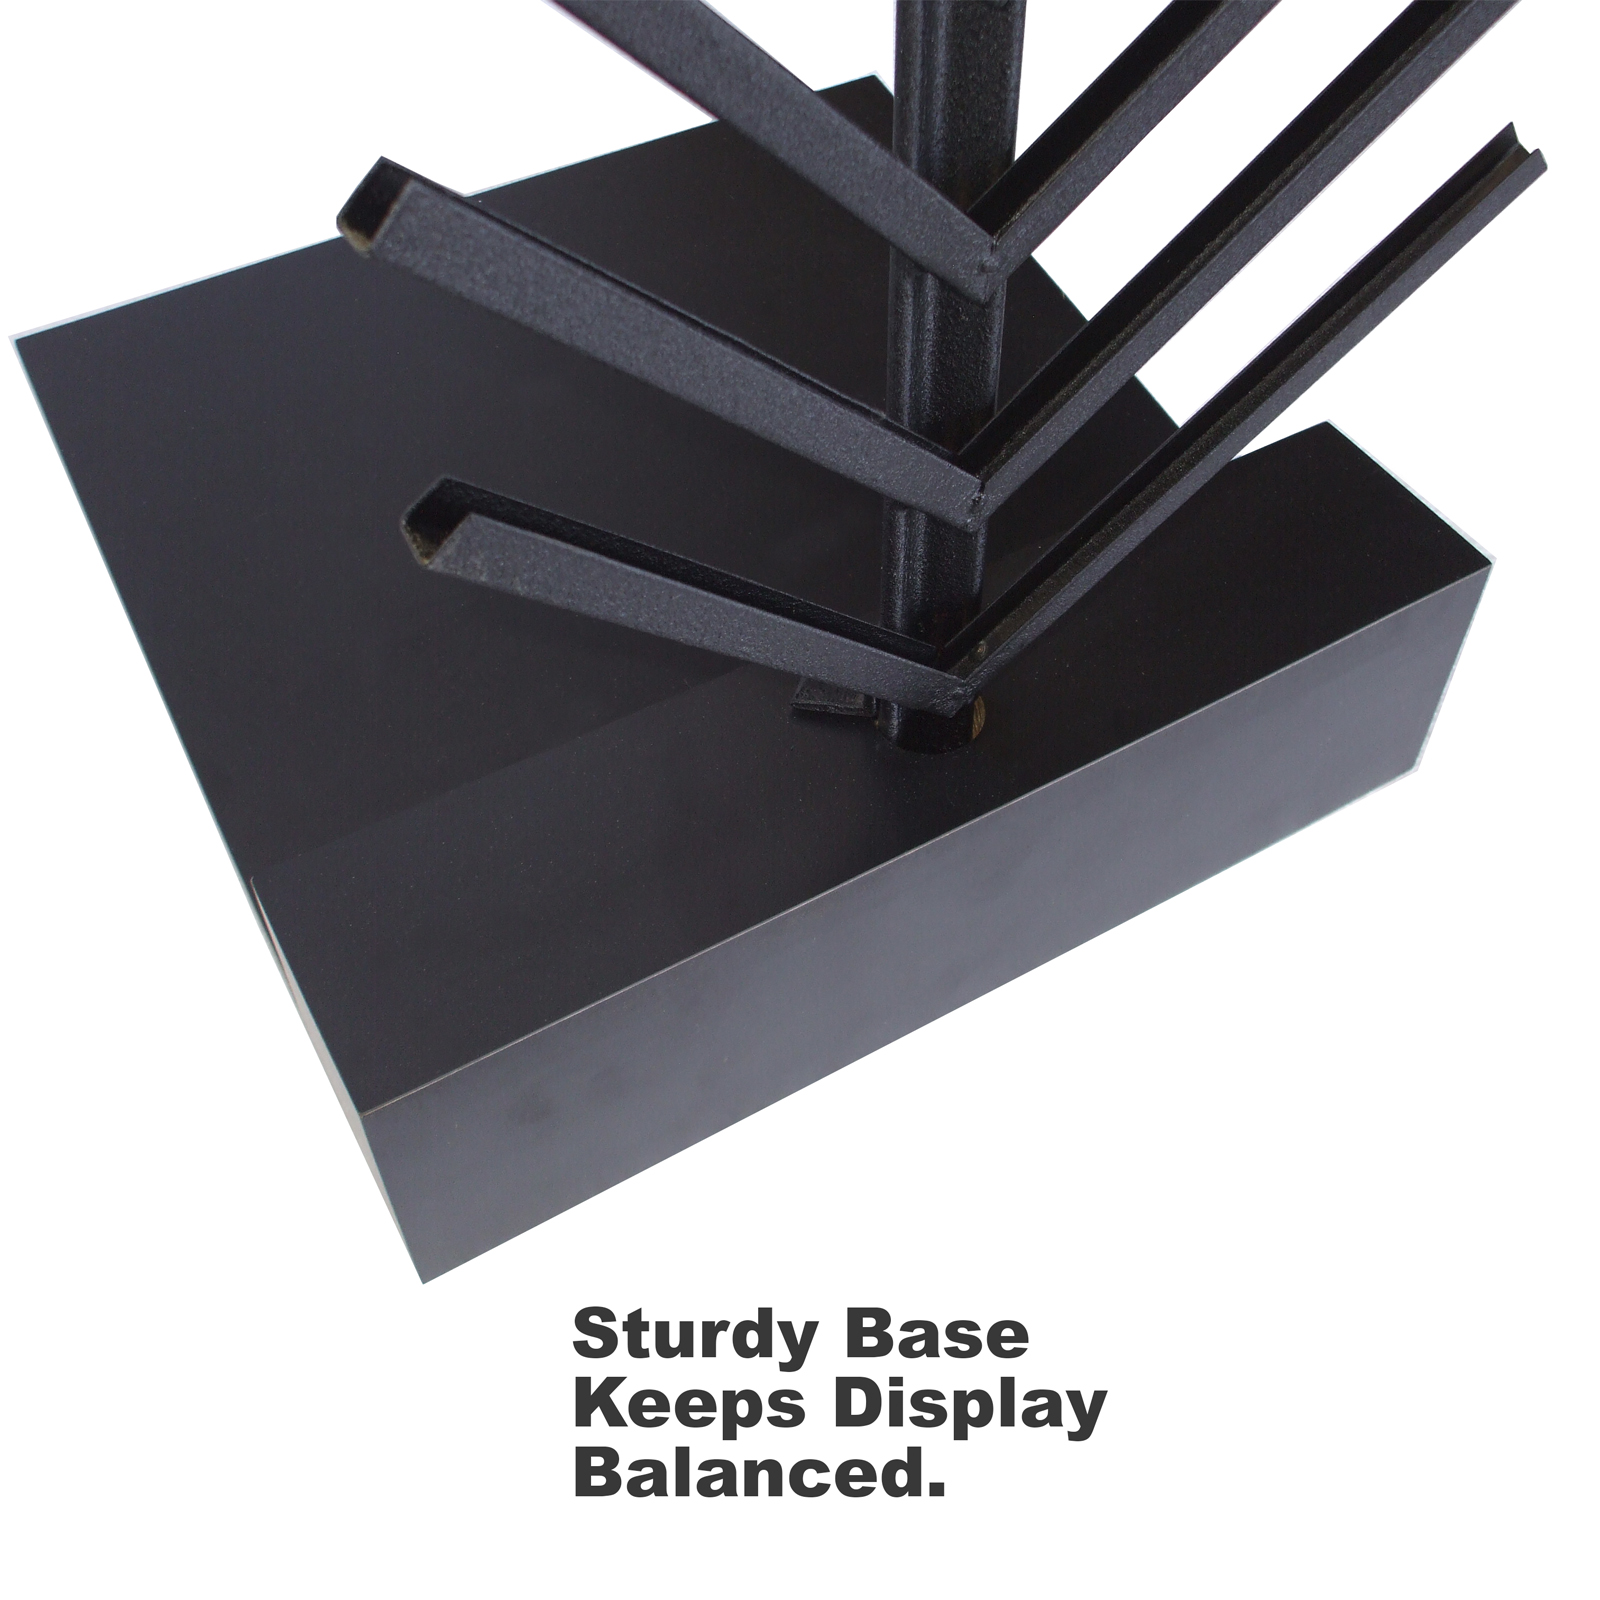 McReady Sample Channel System Sturdy Base Keeps Display Balanced